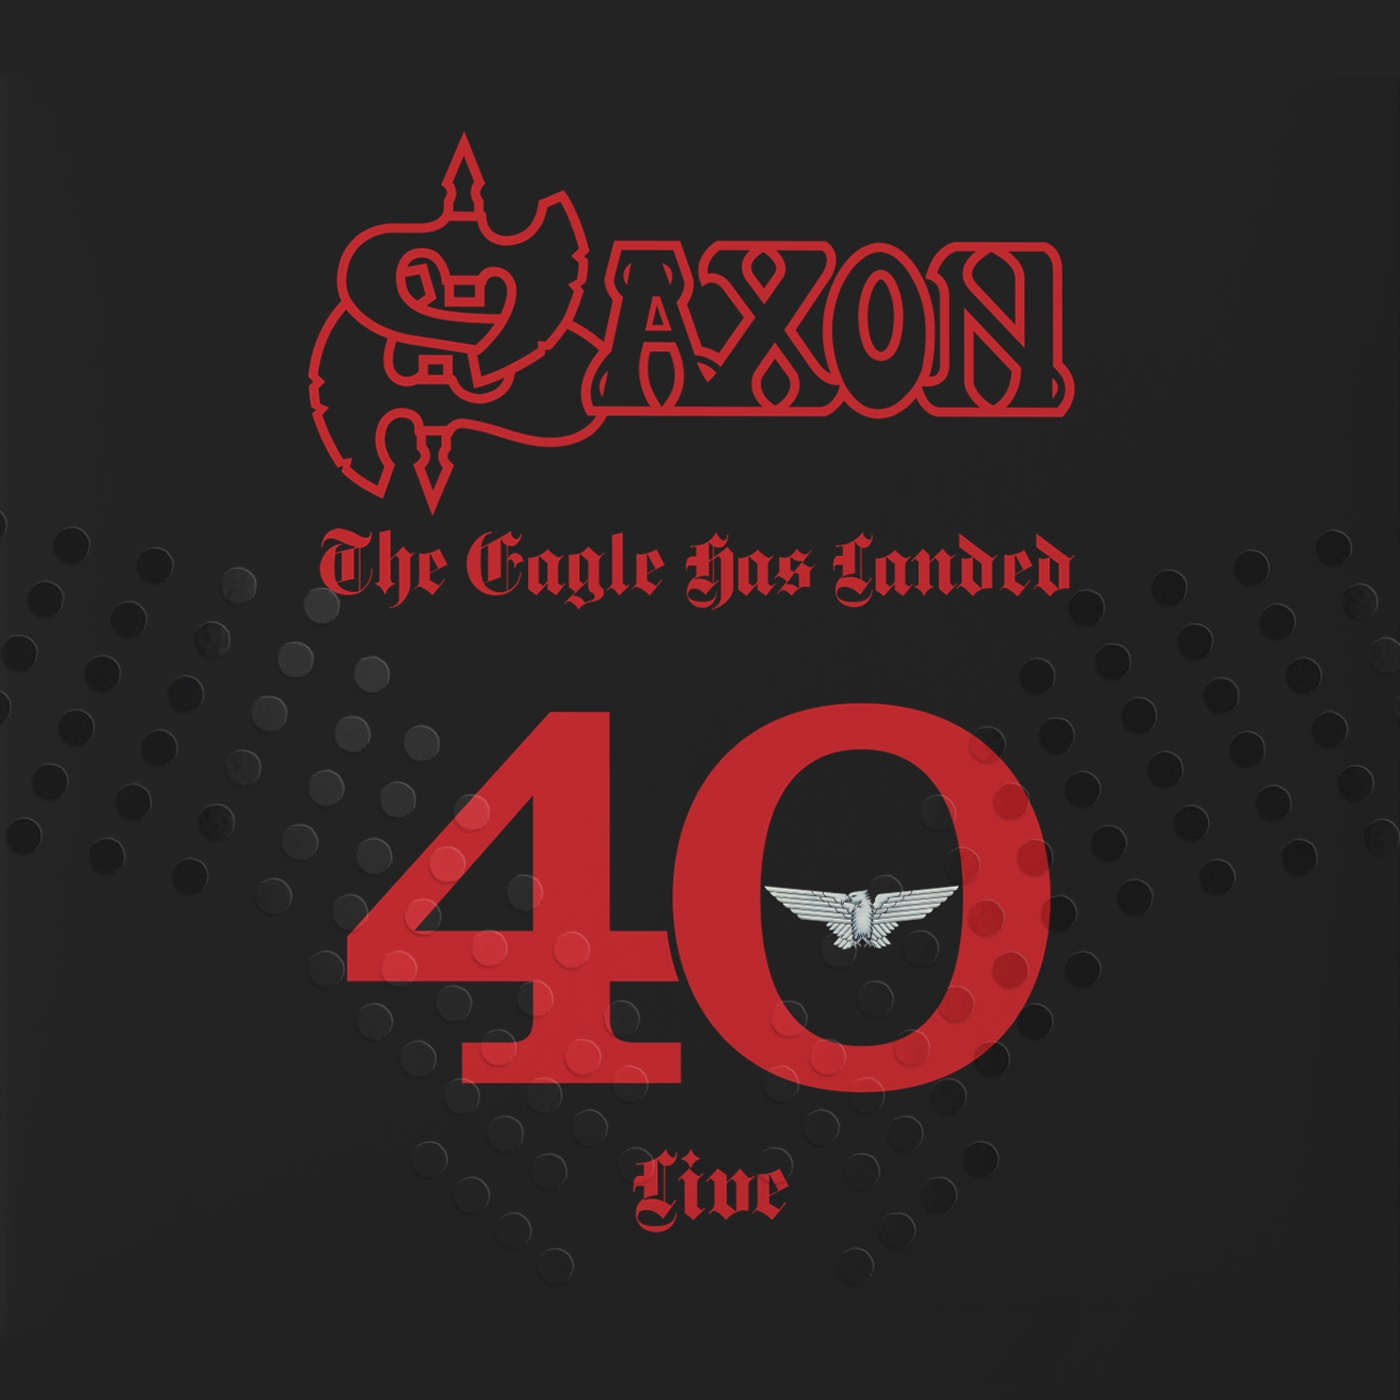 Saxon - The Eagle Has Landed 40 Live - Album Cover